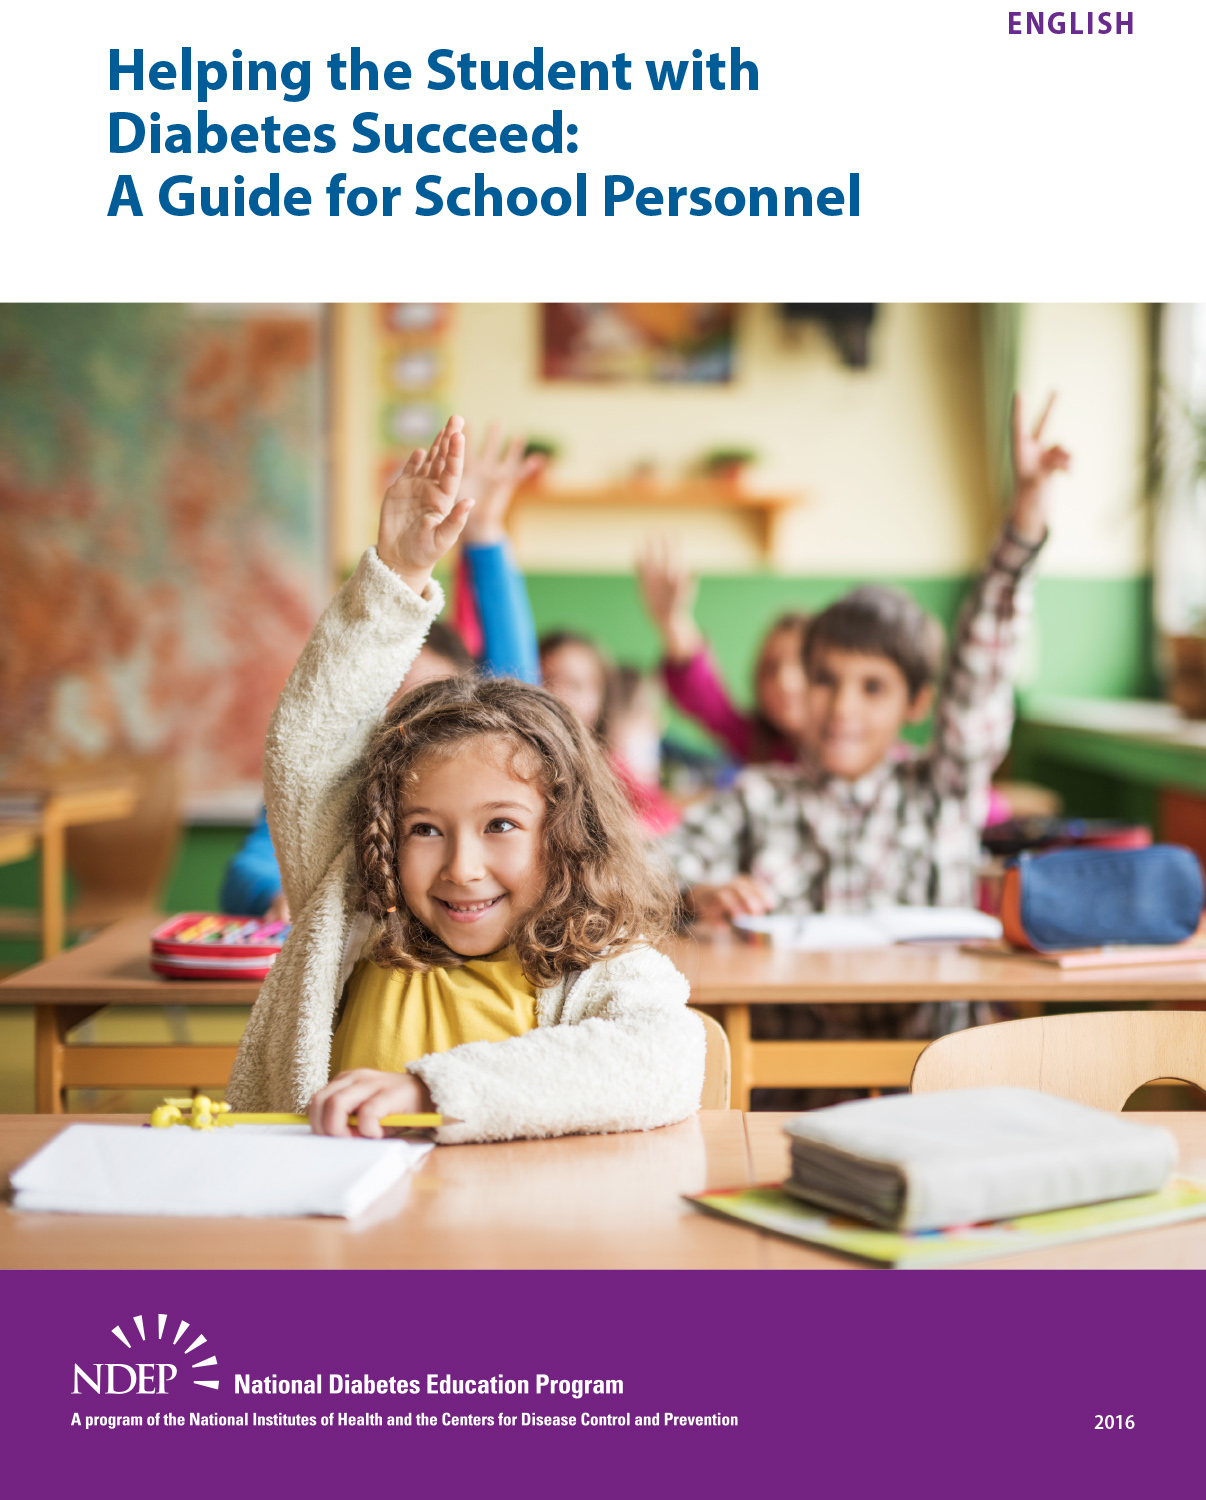 Download Guide for School Personnel